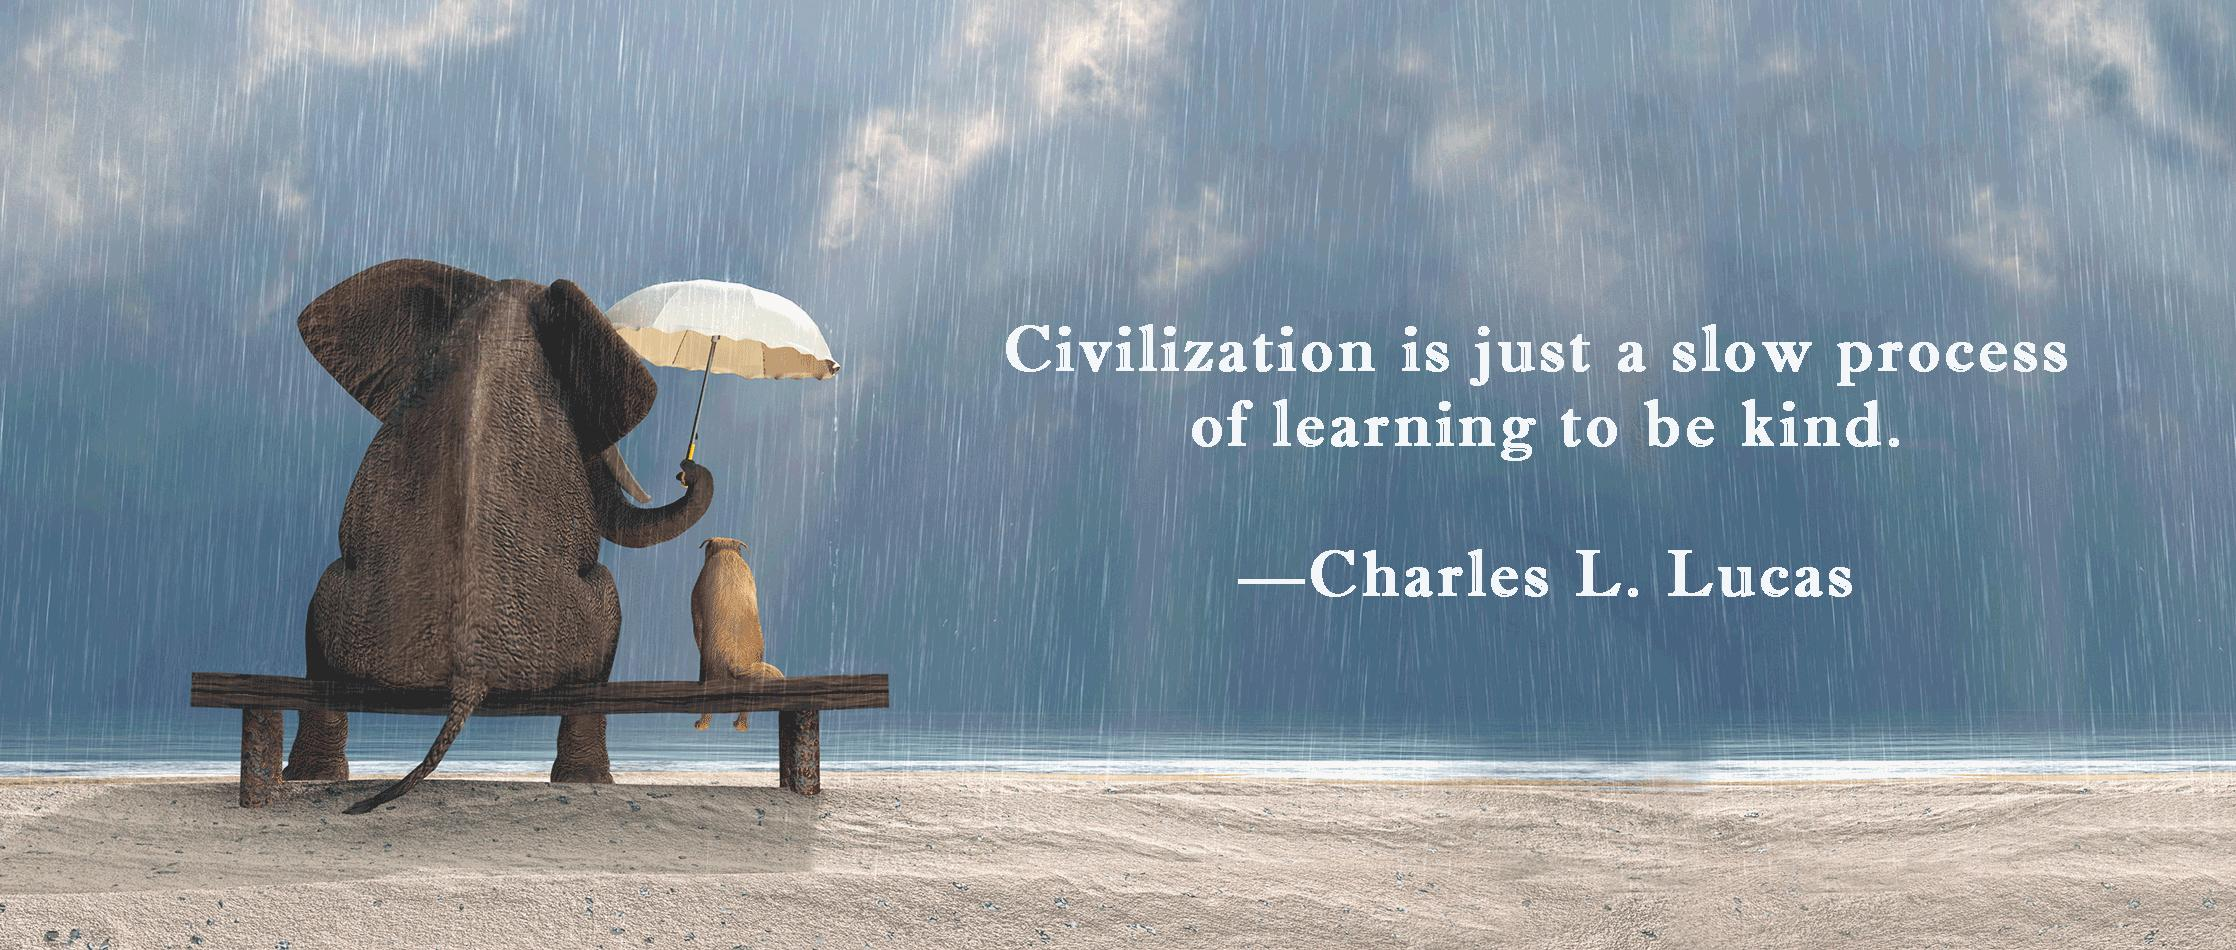 """Civilization is just a slow process of learning to be kind.""—Charles L. Lucas [2236×950] [OC]"